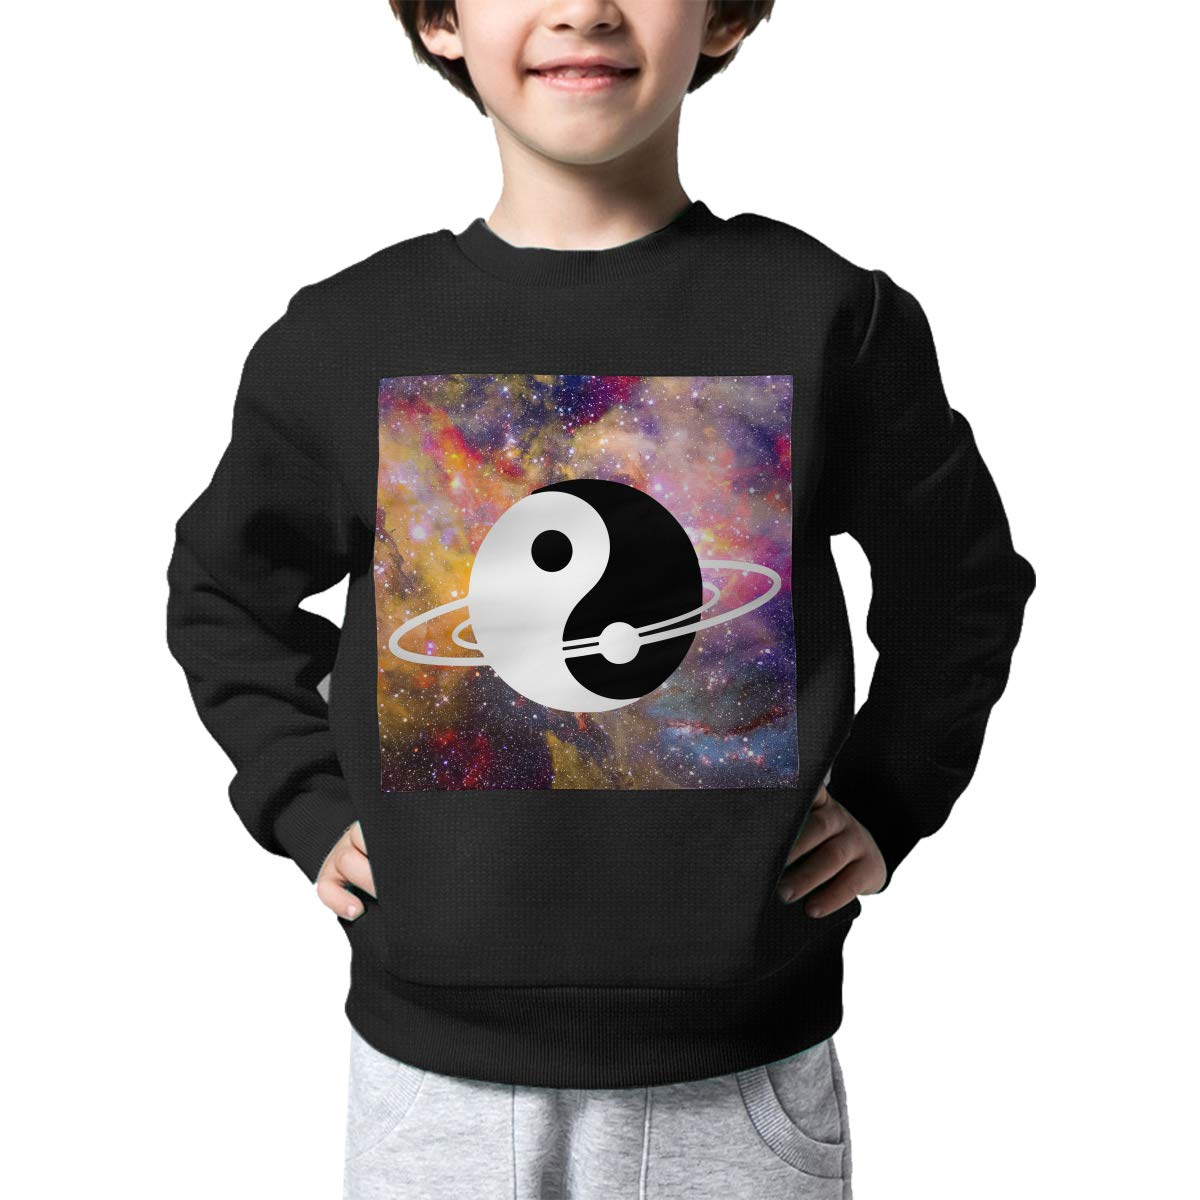 Space Yin Yang Printed Baby Boys Childrens Crew Neck Sweater Long Sleeve Warm Knit Sweater Jumper